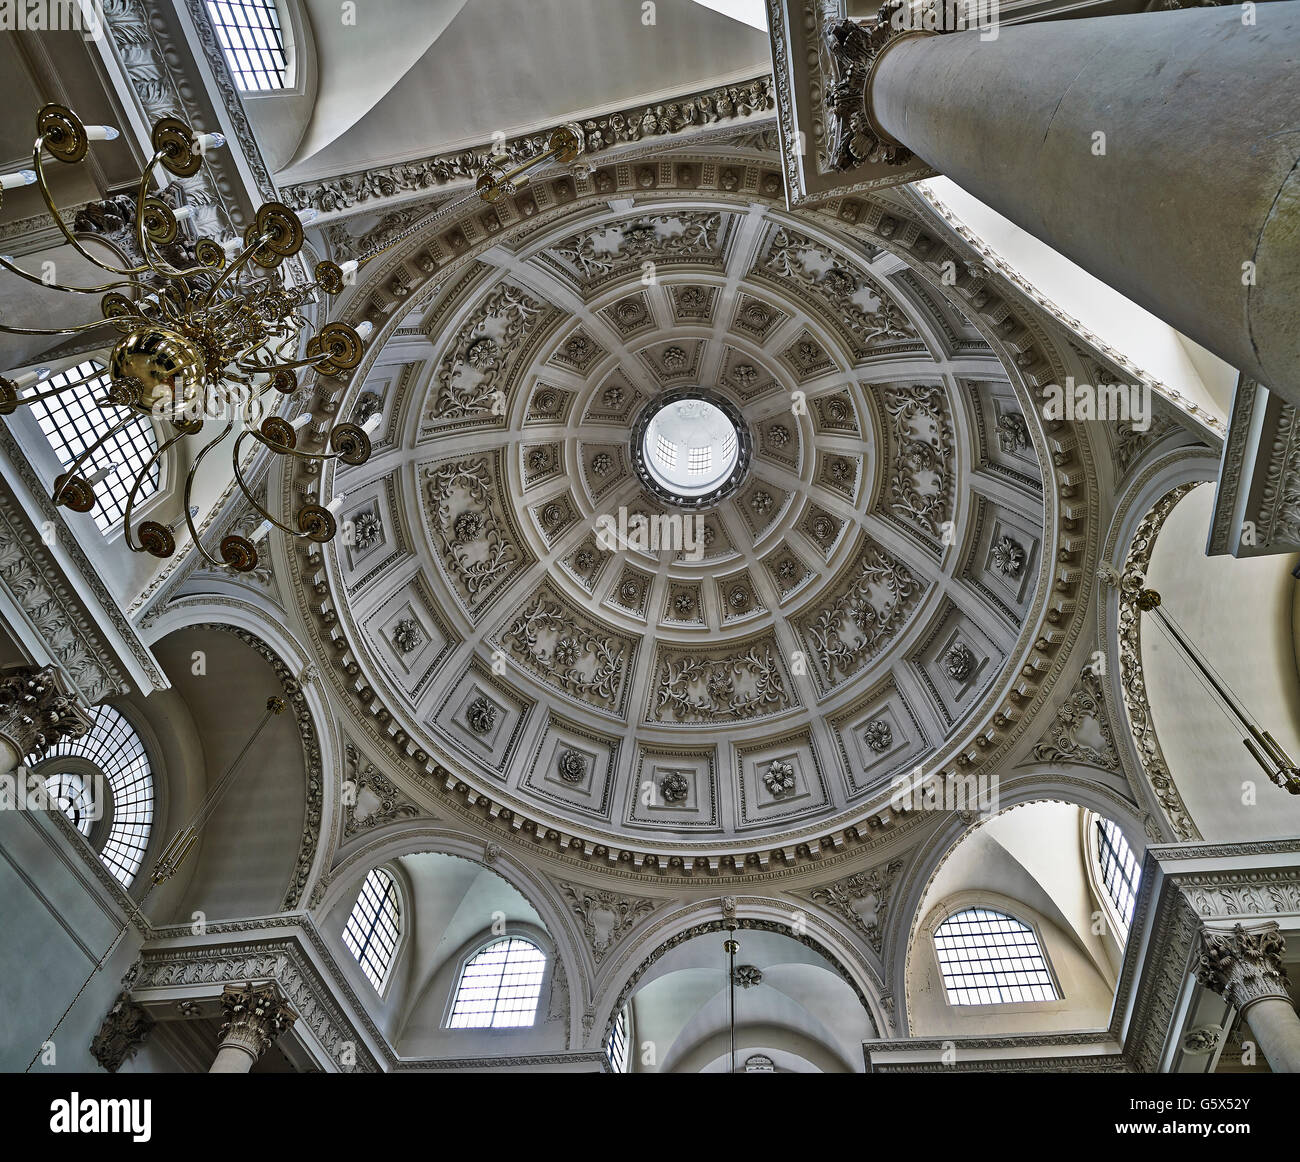 ... St Stephen Walbrook, Church In The City Of London; Dome Interior    Stock Photo